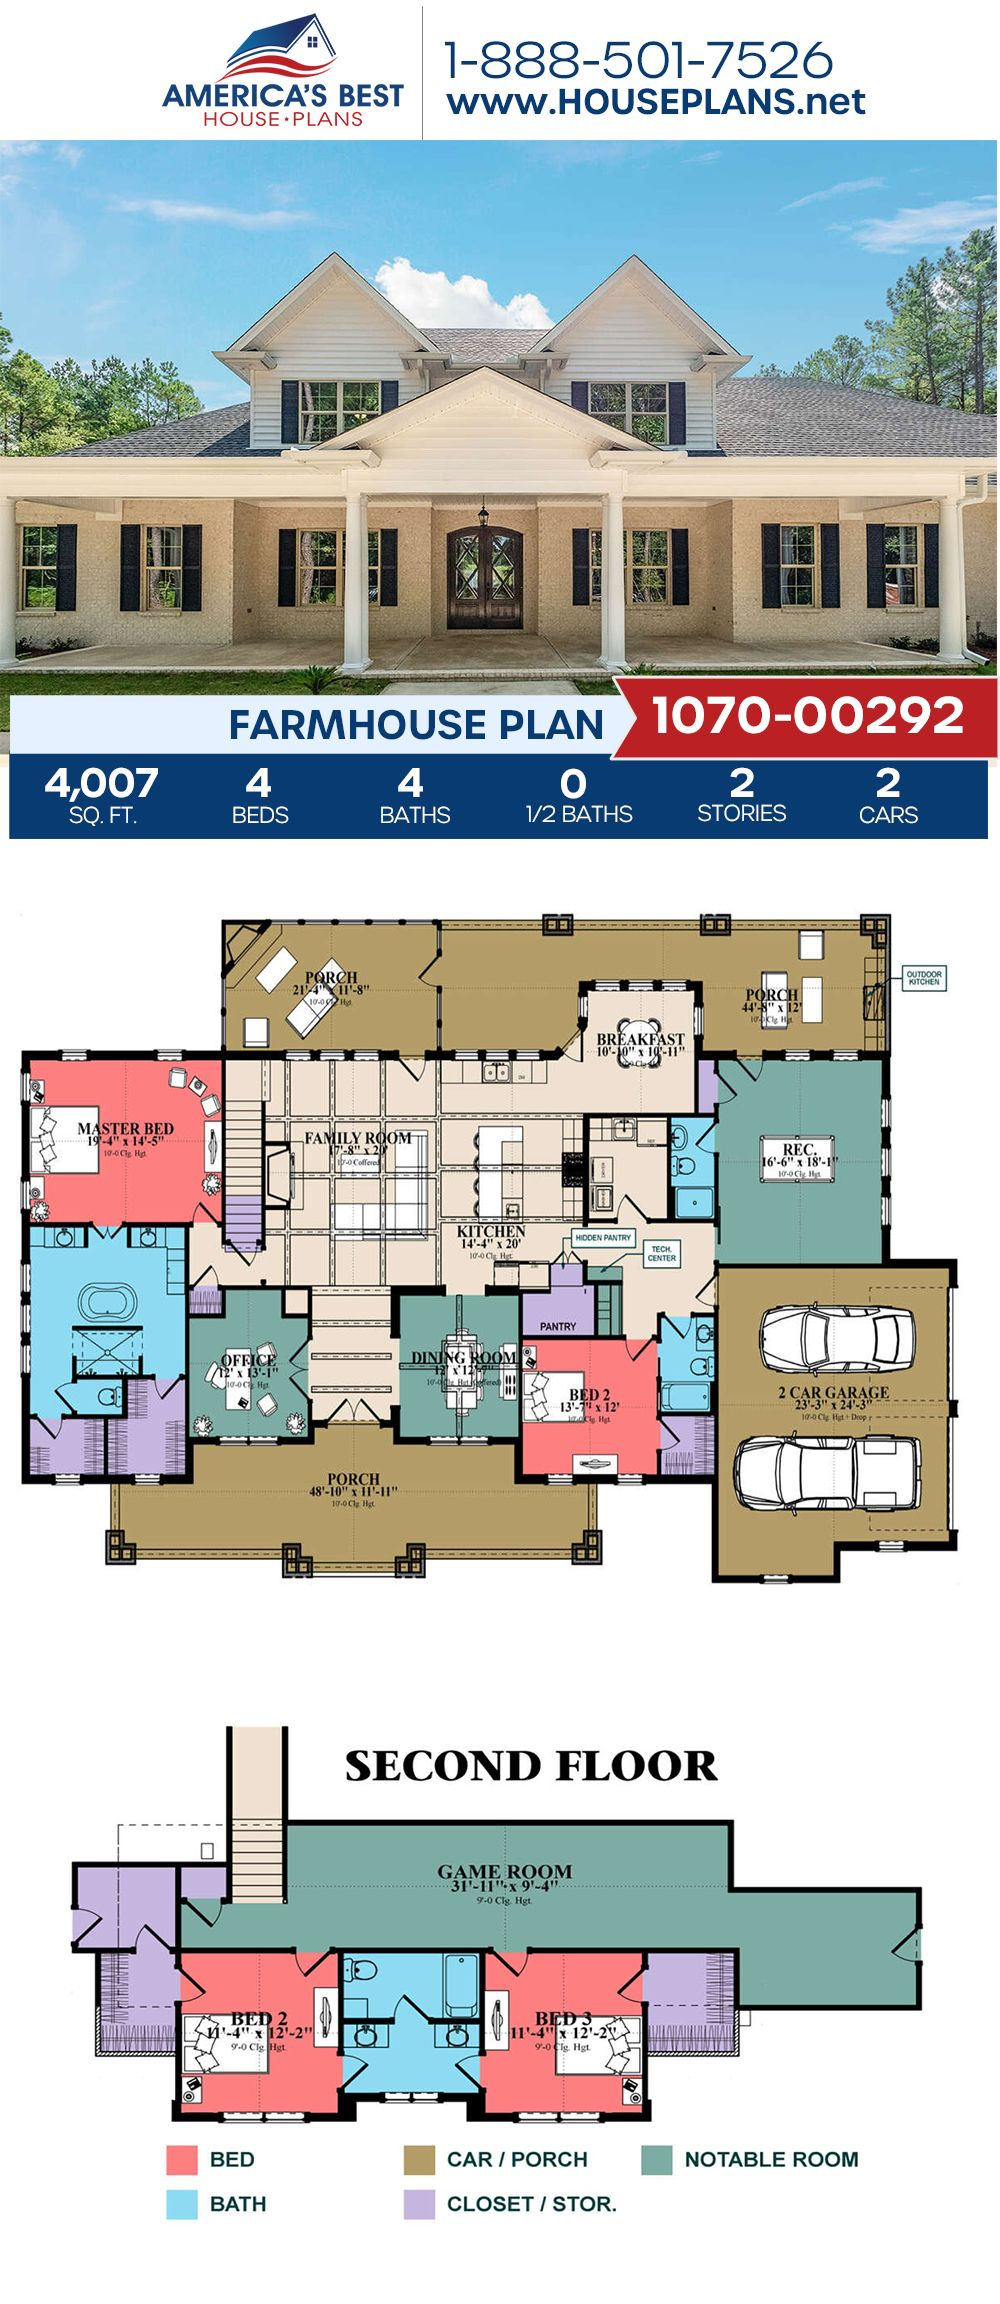 Check out this goregous Farmhouse design! Plan 1070-00292 outlines 4,007 sq. ft., 4 bedrooms, 4 bathrooms, a breakfast nook, a kitchen island, an open floor plan, a home office, and a media room. #farmhouse #openfloorplan #twostoryhome #architecture #houseplans #housedesign #homedesign #homedesigns #architecturalplans #newconstruction #floorplans #dreamhome #dreamhouseplans #abhouseplans #besthouseplans #newhome #newhouse #homesweethome #buildingahome #buildahome #residentialplans